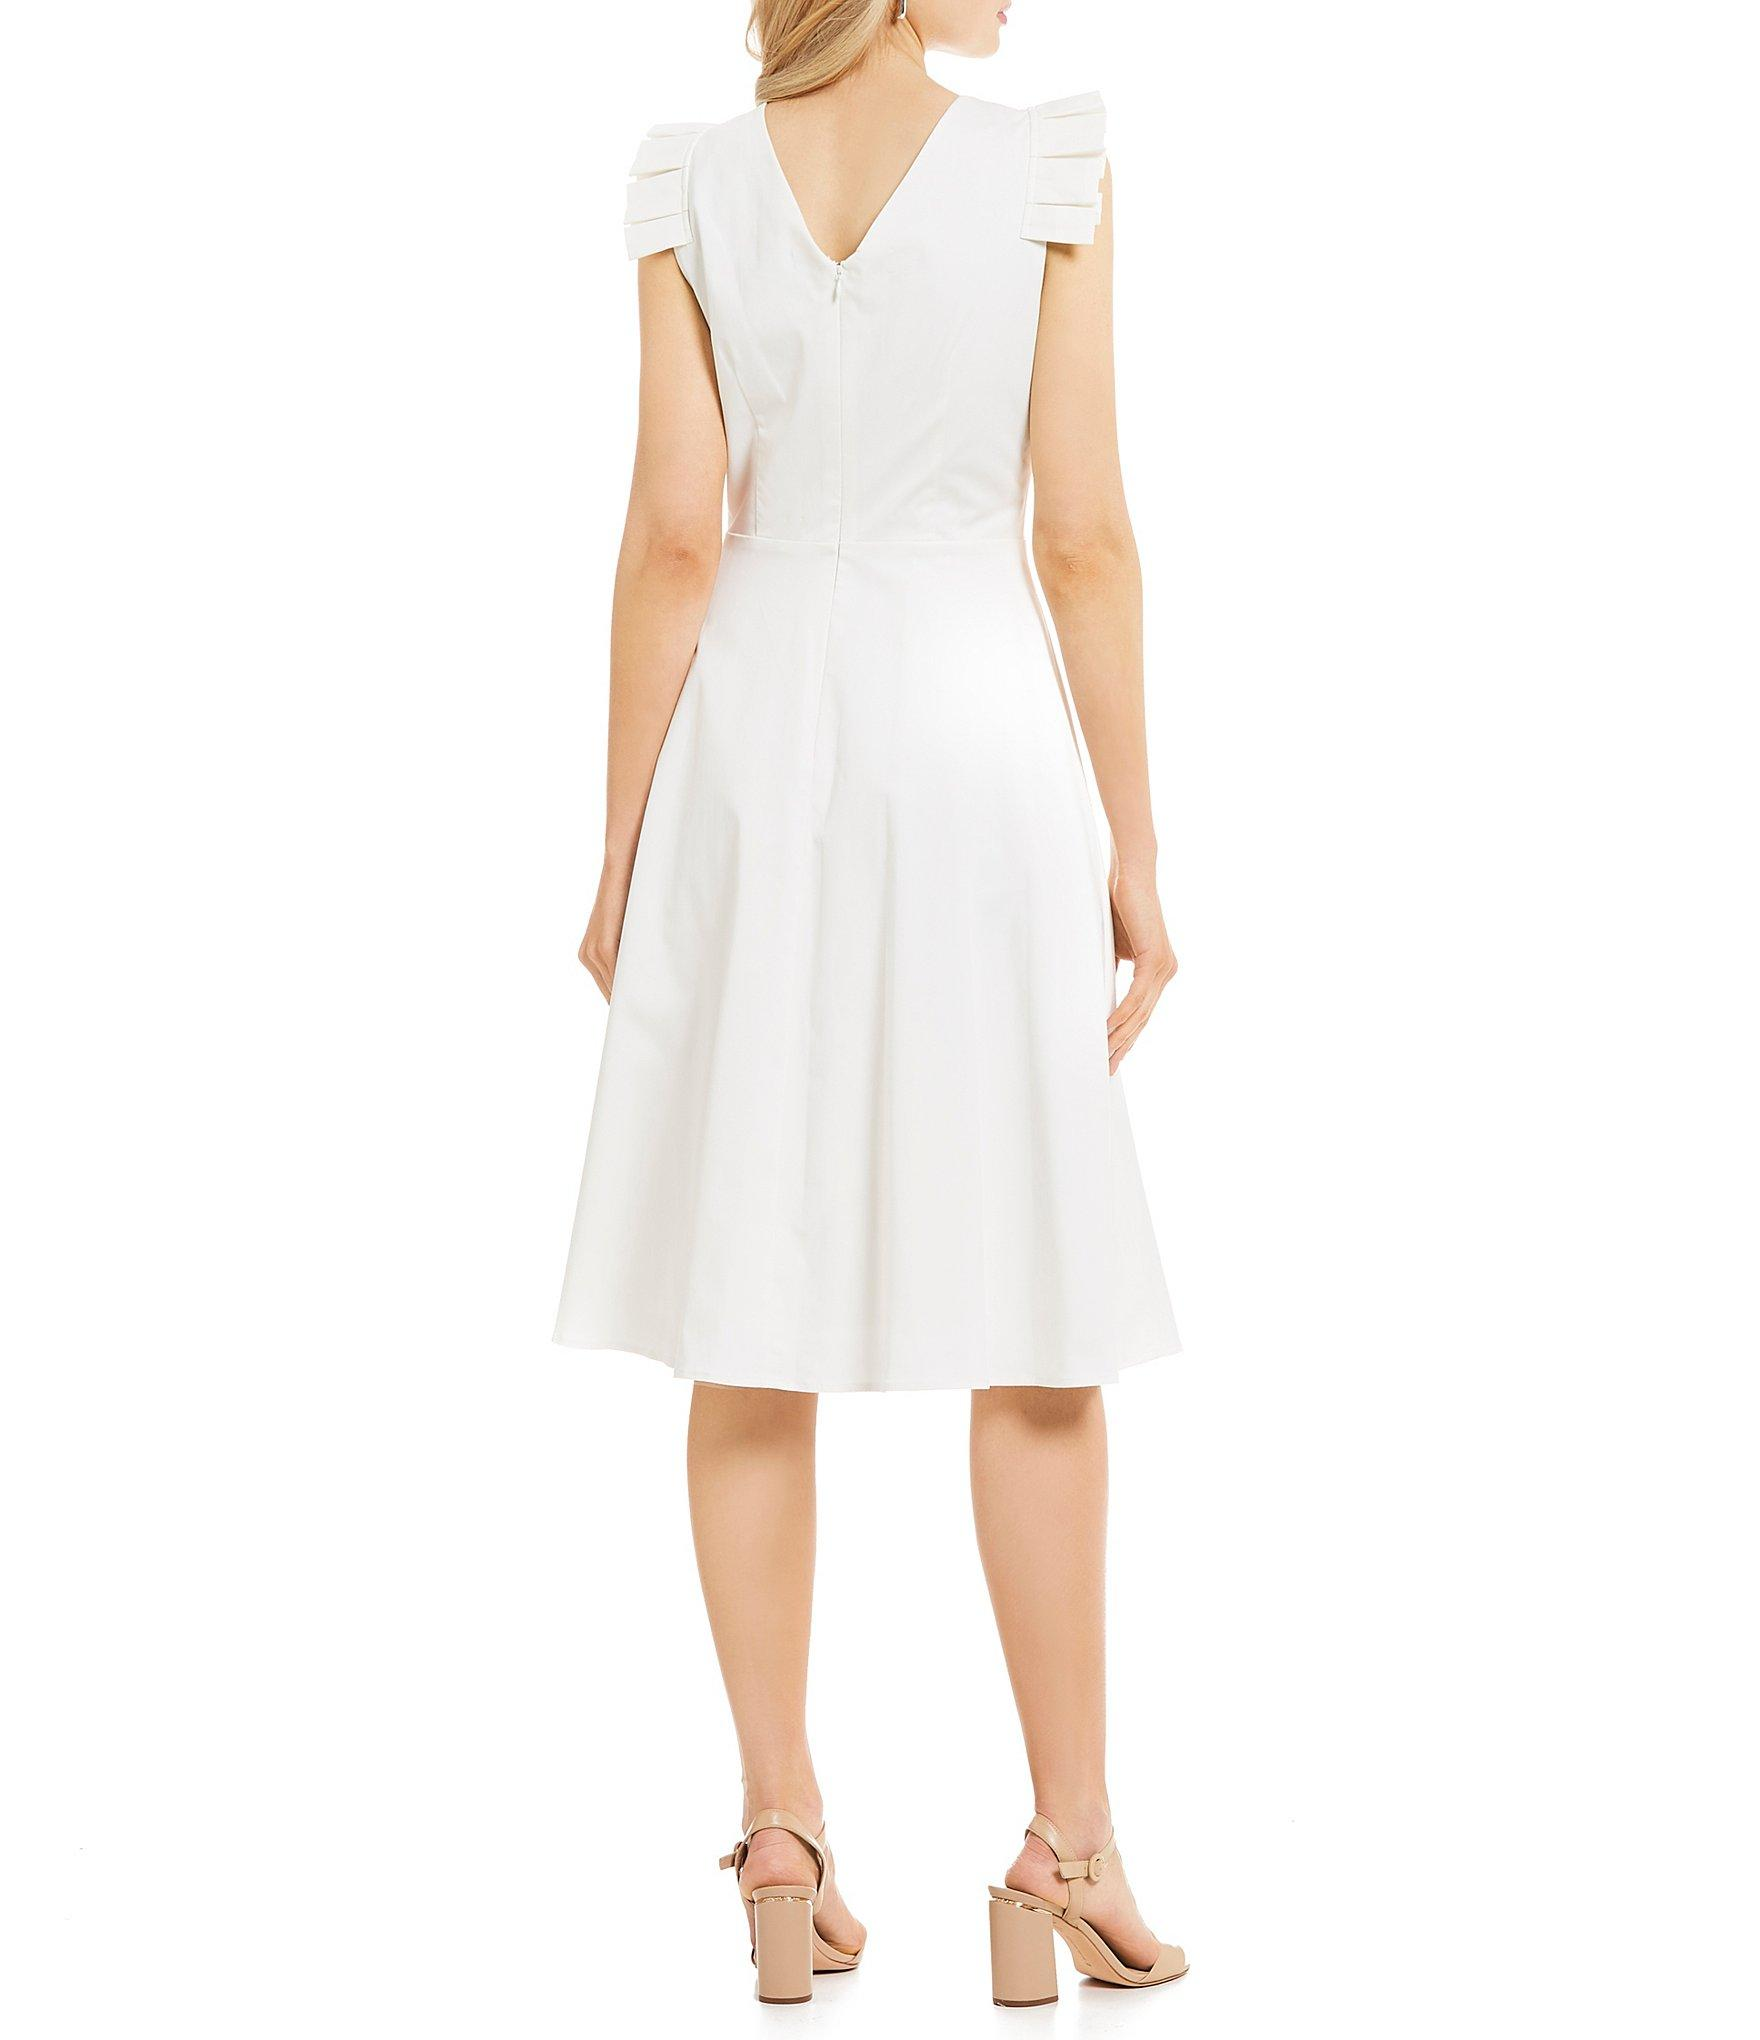 5f704e2d007 Antonio Melani - White Lois Pleated Cap Sleeve Fit   Flare Midi Dress - Lyst.  View fullscreen